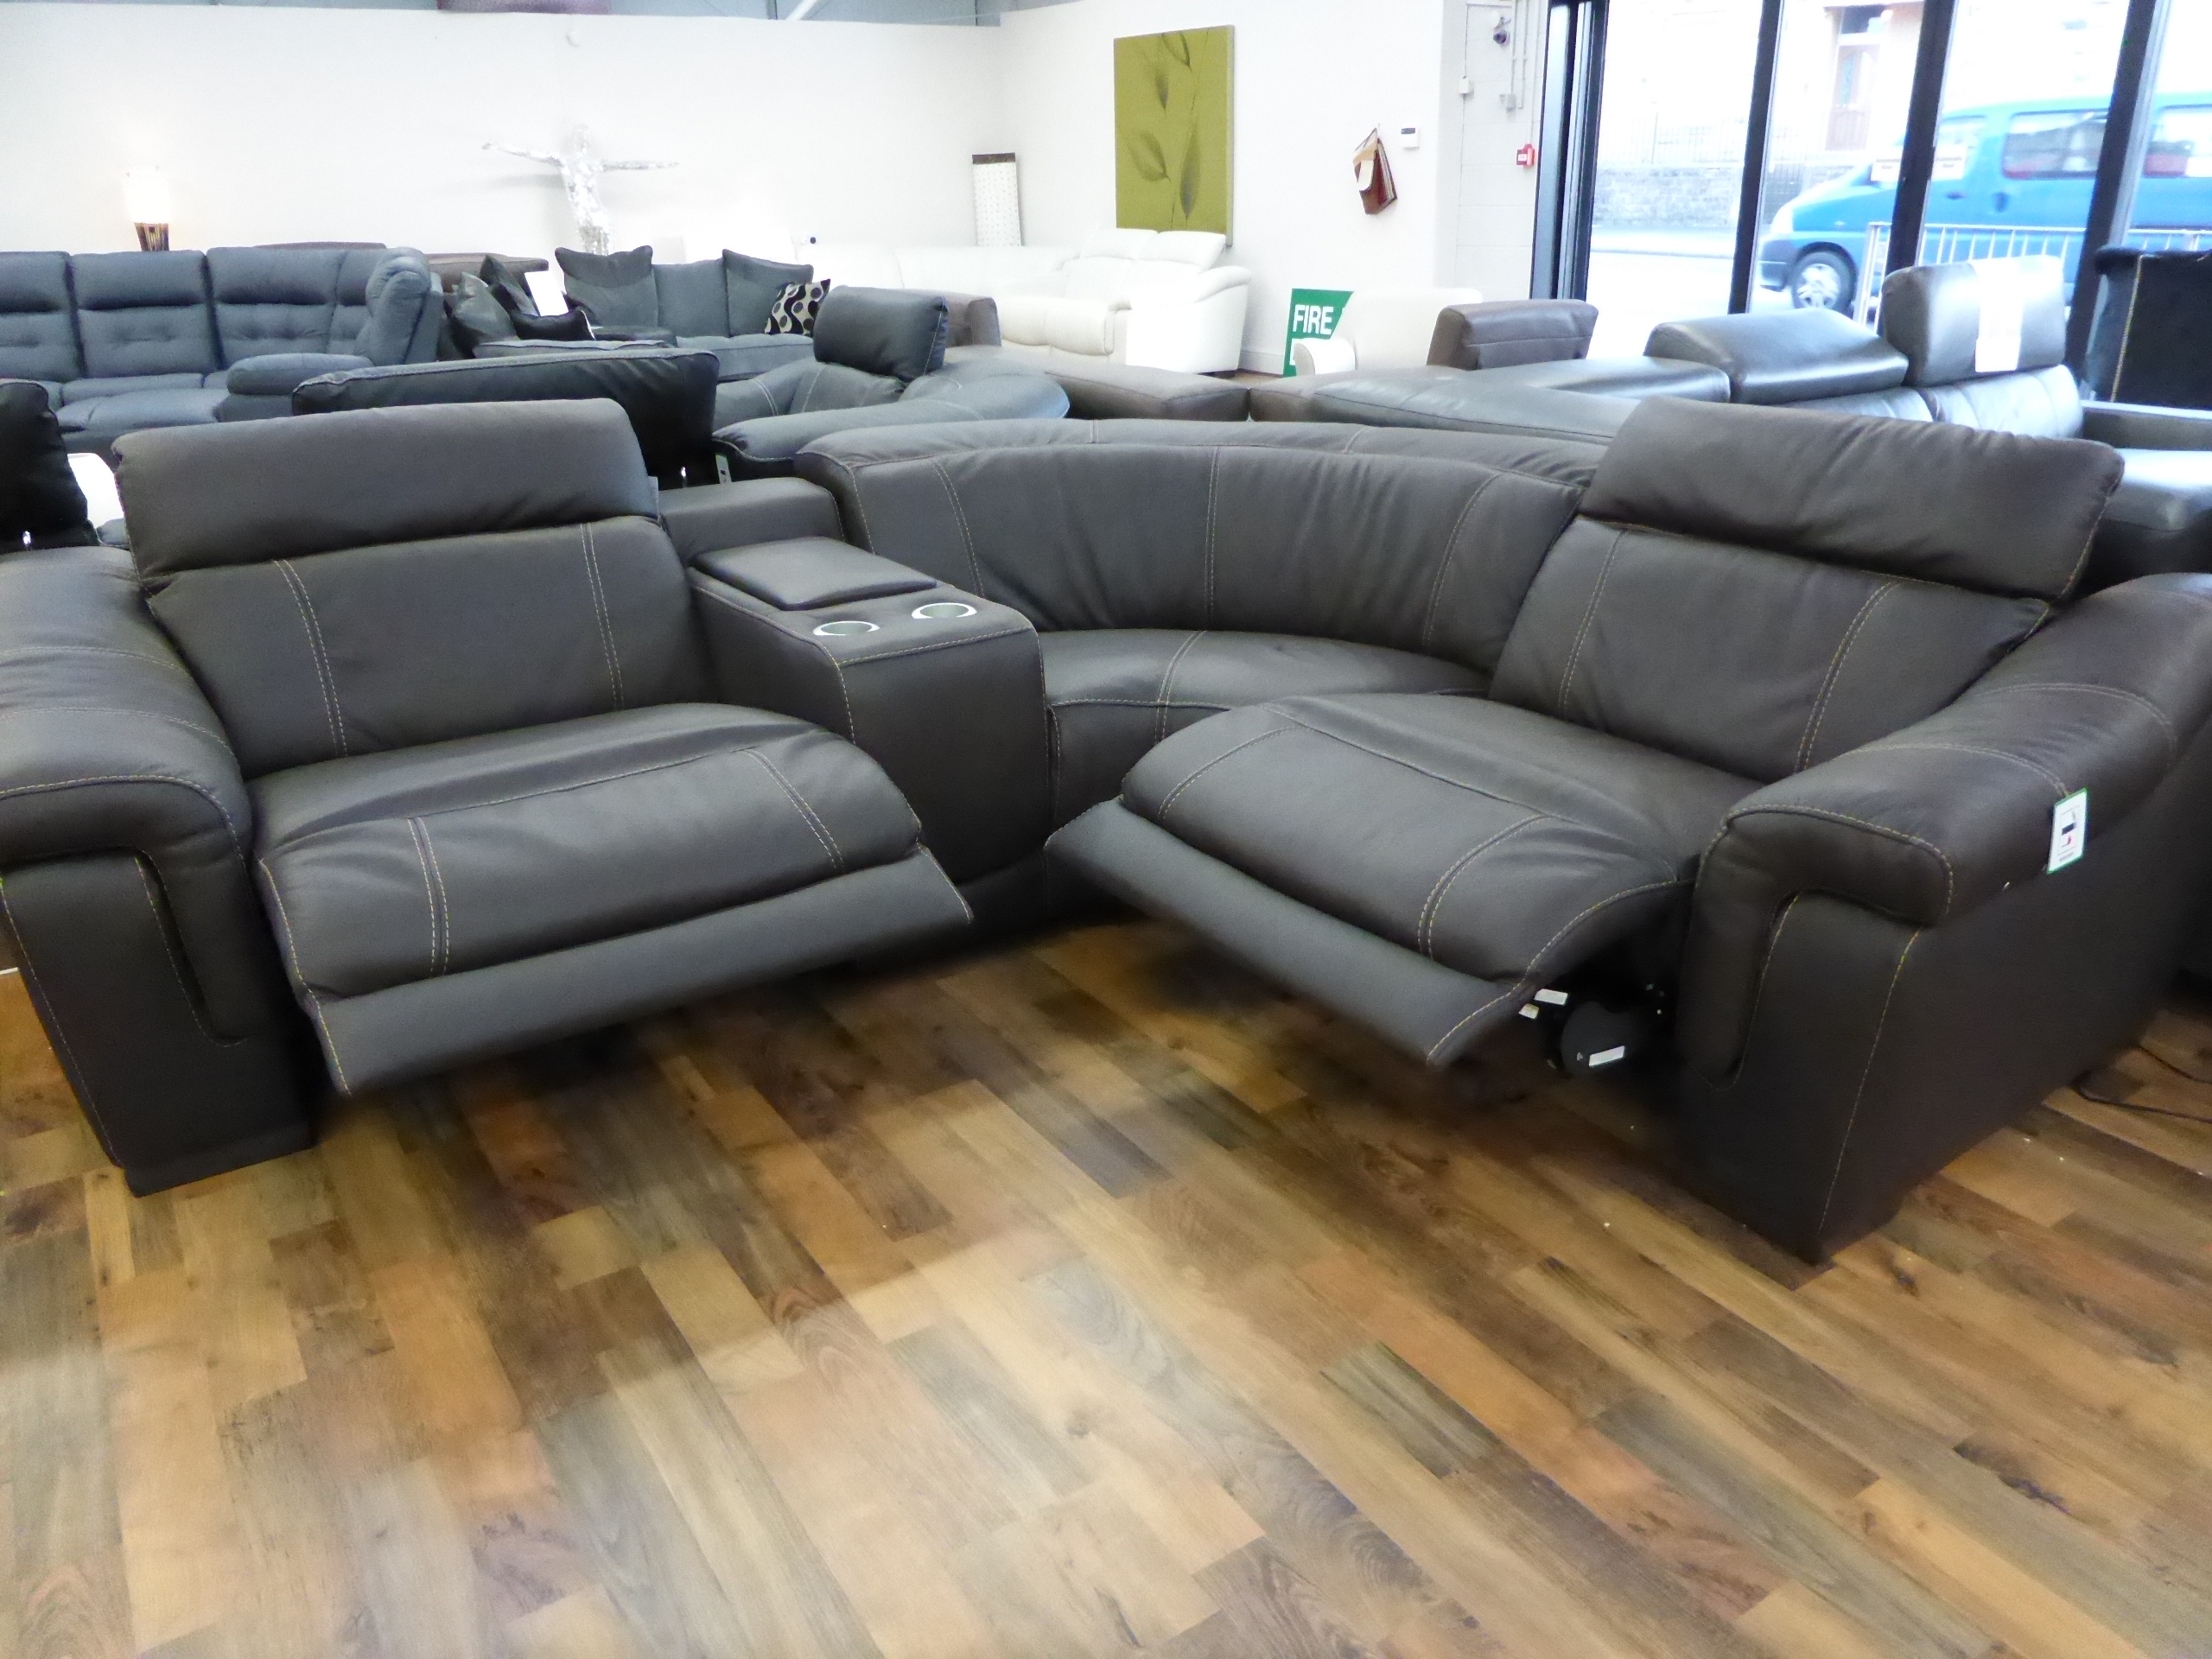 Leather Power Recliner Sofa Uk Codeminimalist Throughout Curved Recliner Sofa (Image 6 of 15)